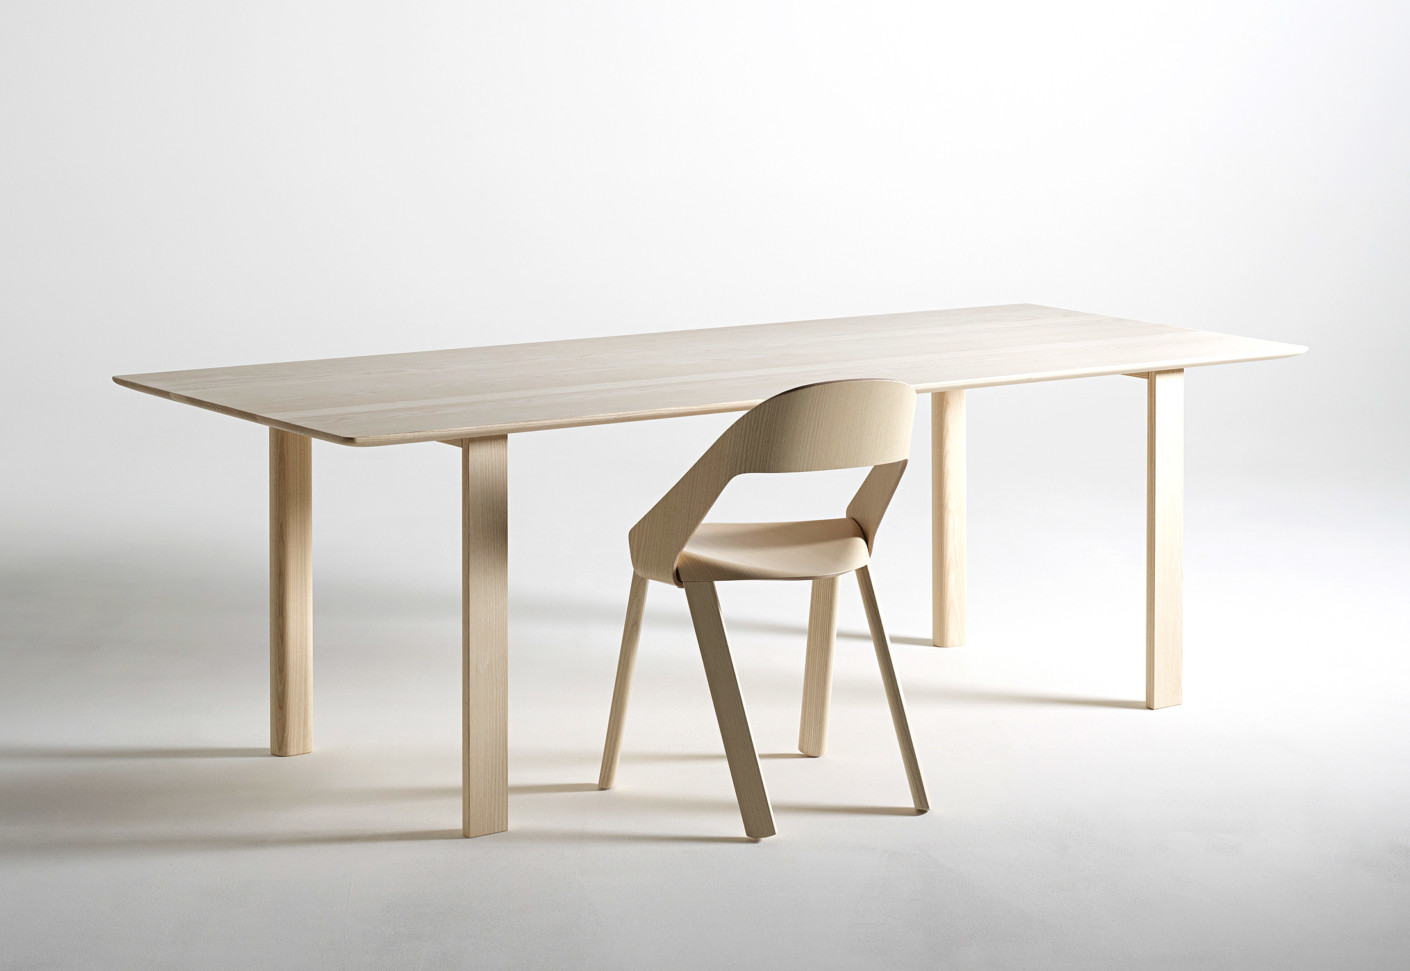 WOGG TIRA solid wood table by Wogg | STYLEPARK